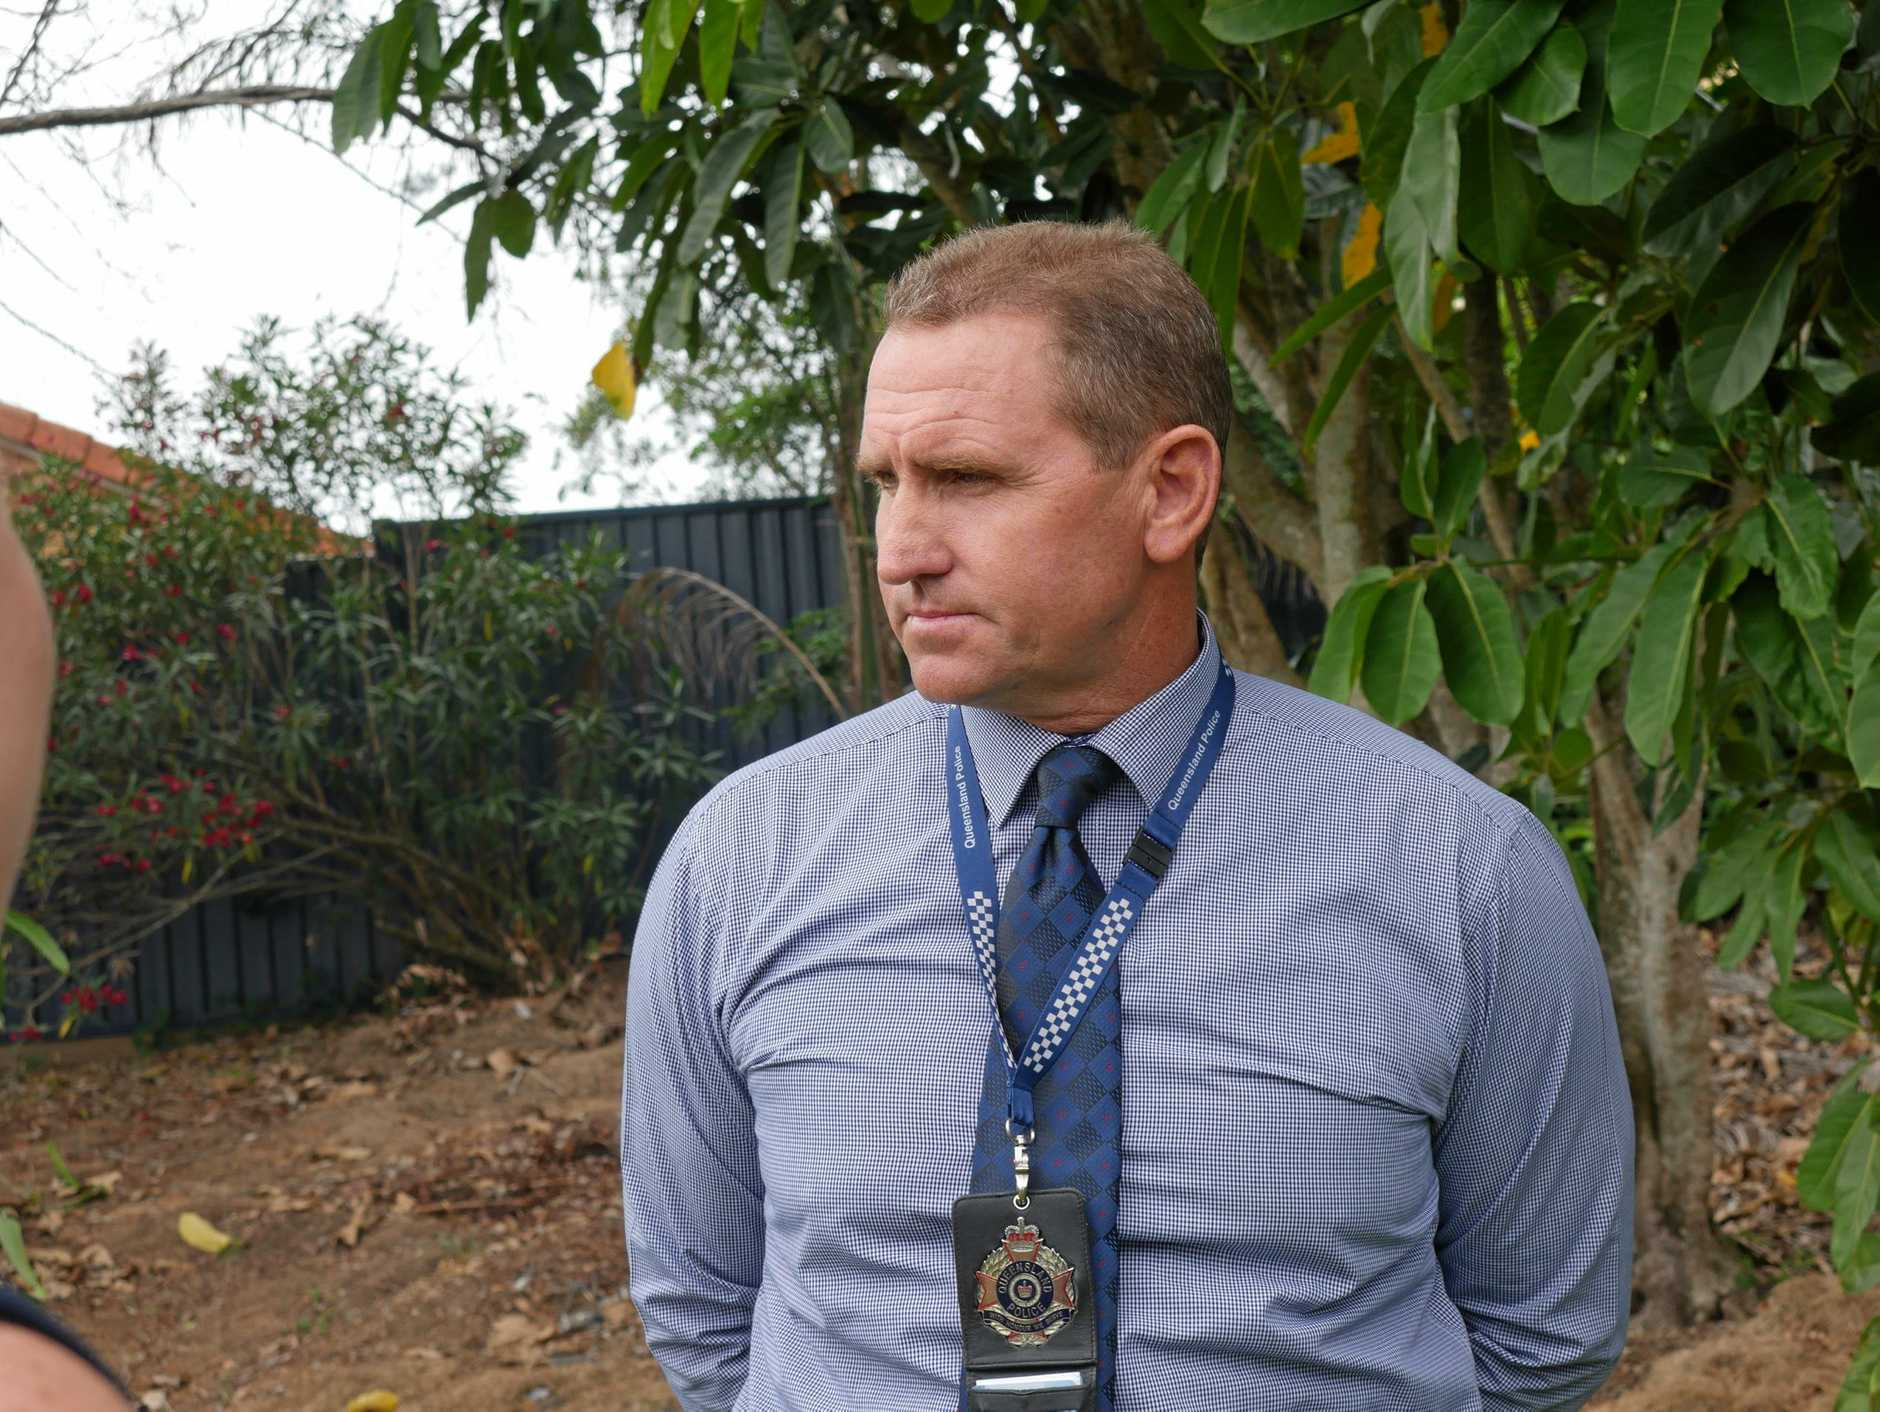 Detectives investigate a serious assault on Alice St, Pialba on January 7 - Detective Acting Inspector Wade Lee.